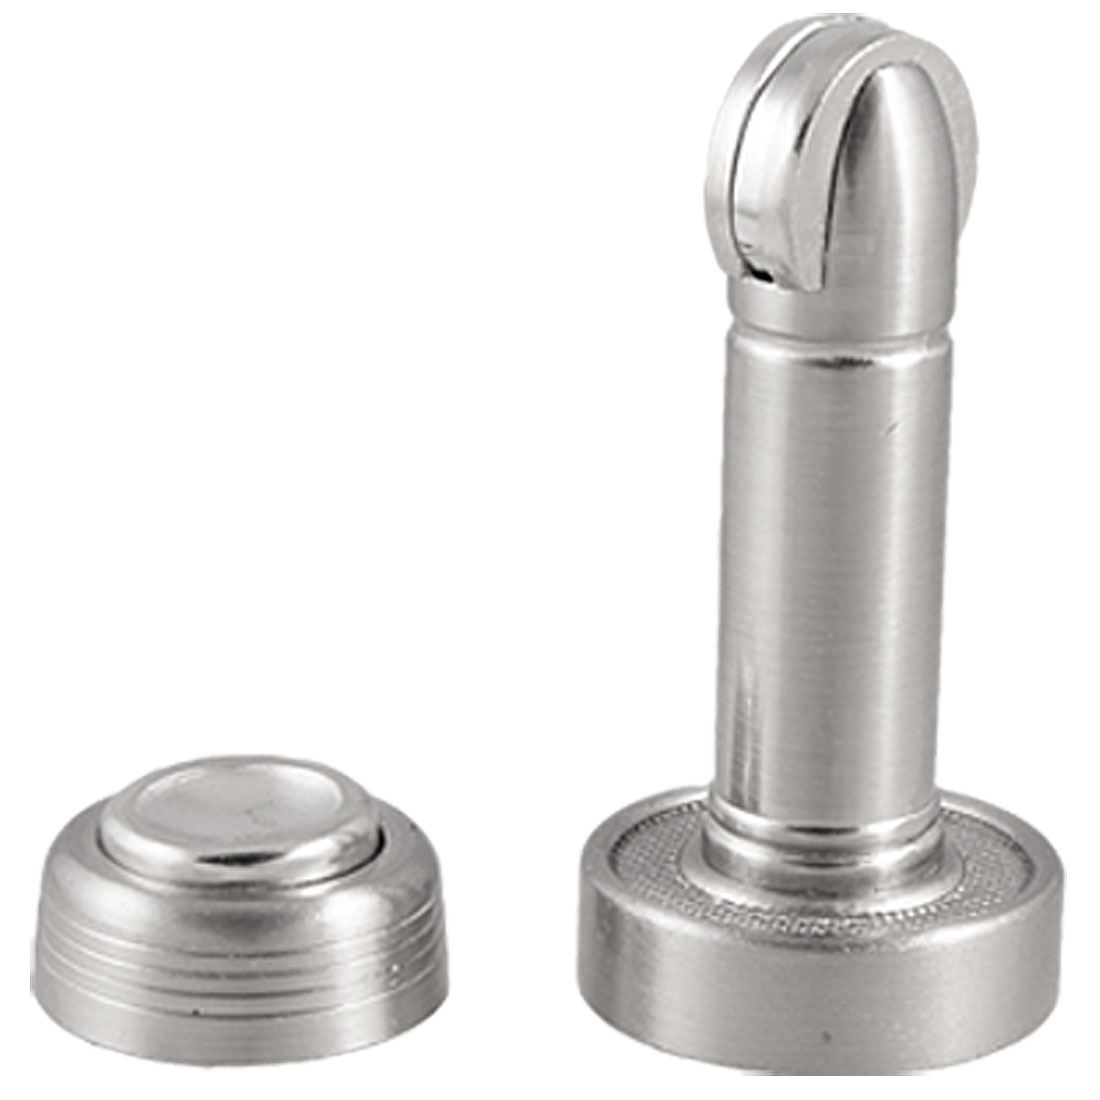 Silver Tone Metal Magnetic Door Holder Stopper Home Hardware